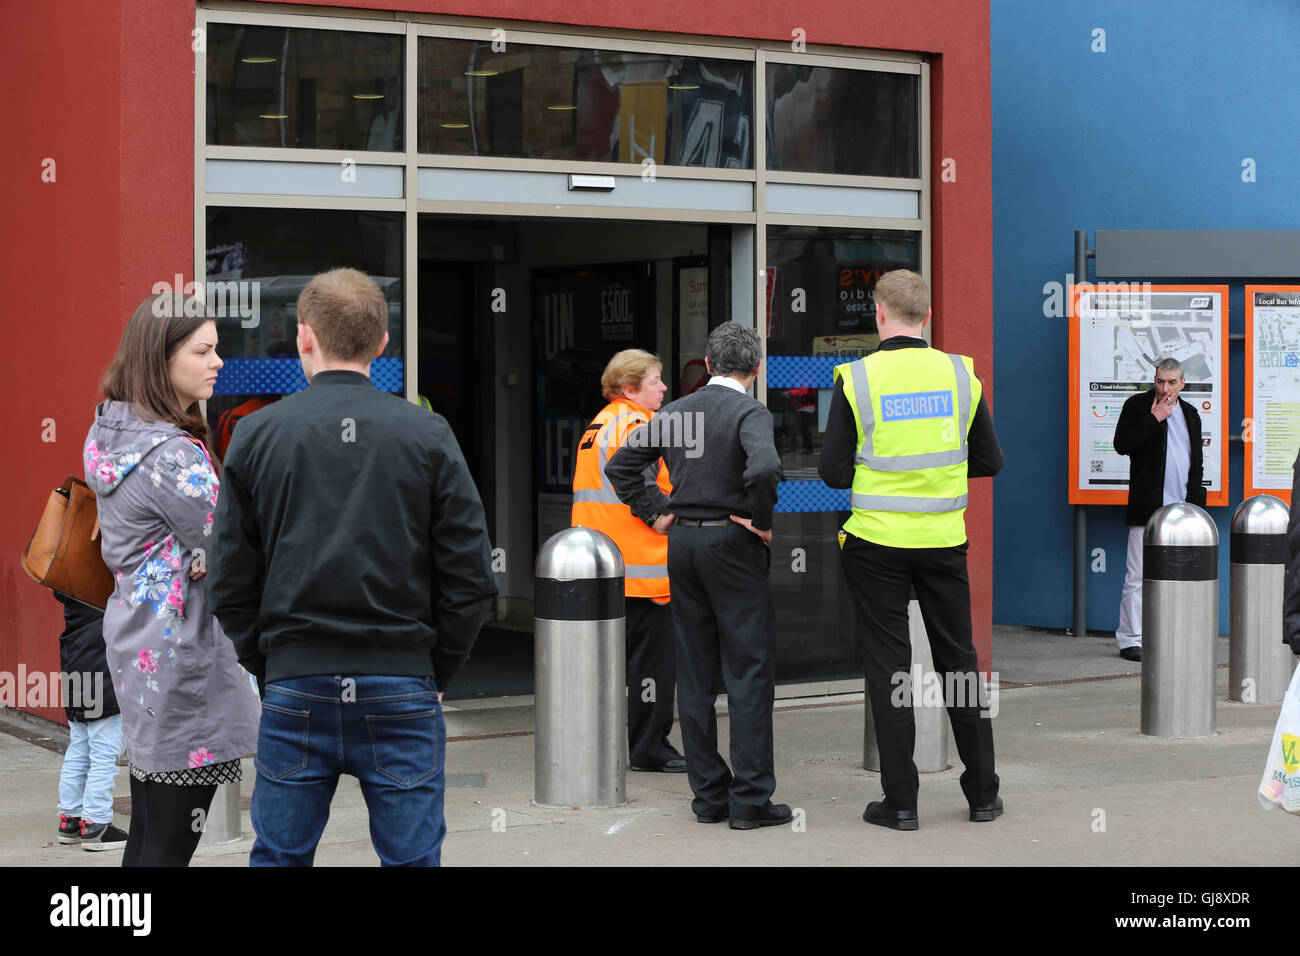 Partick Train and Underground station evacuated and closed in security alert. - Stock Image